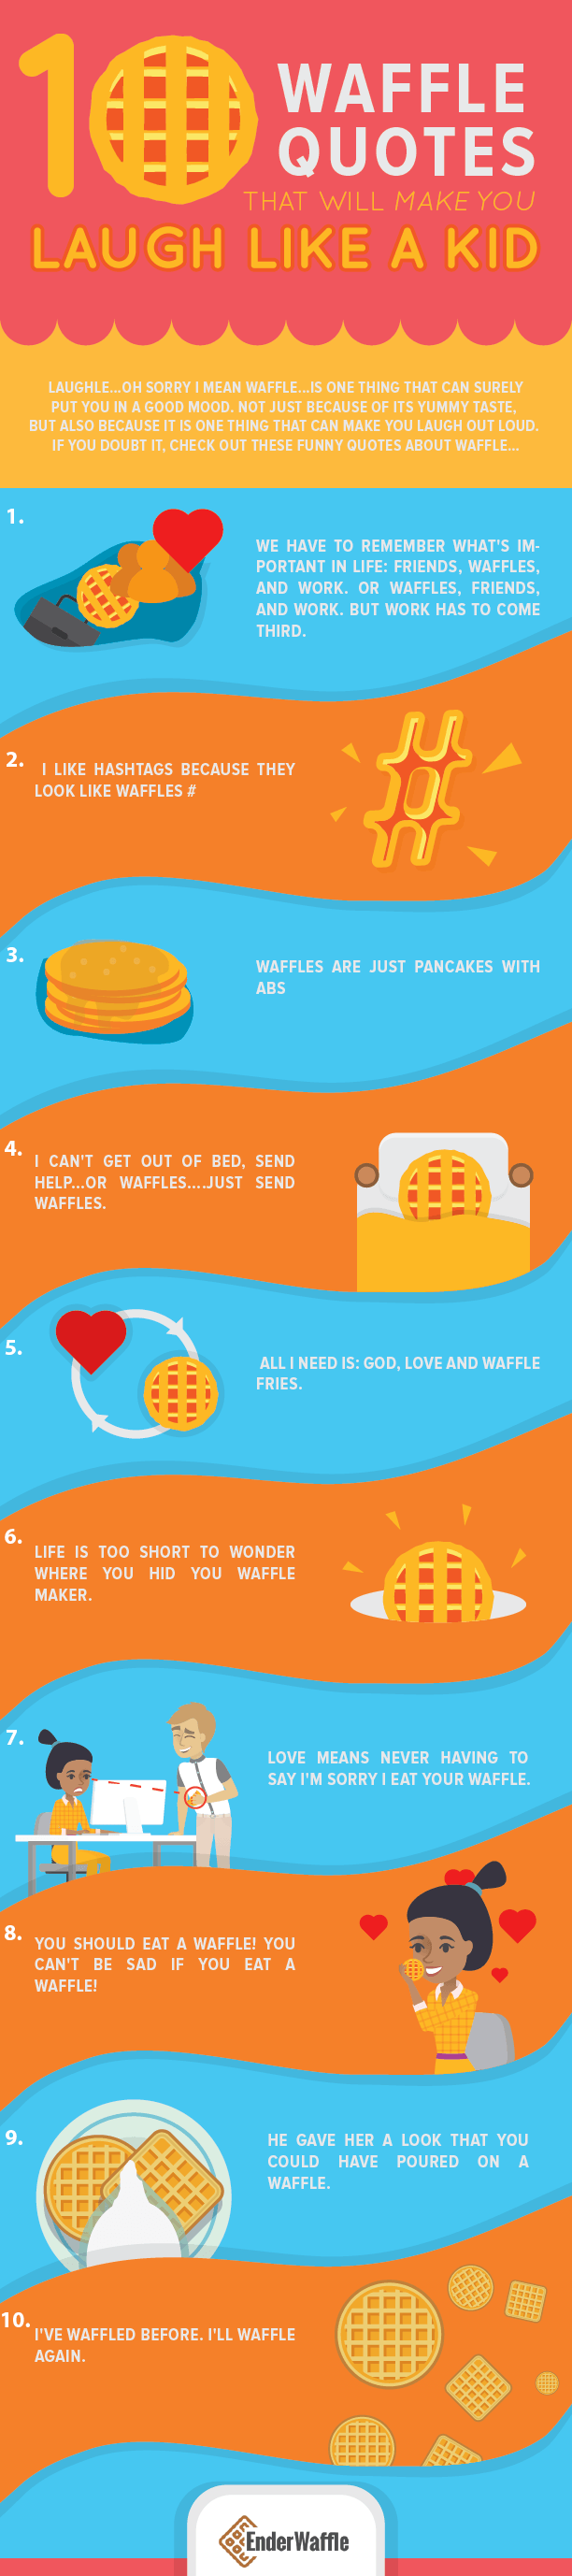 Funny Waffle Quotes